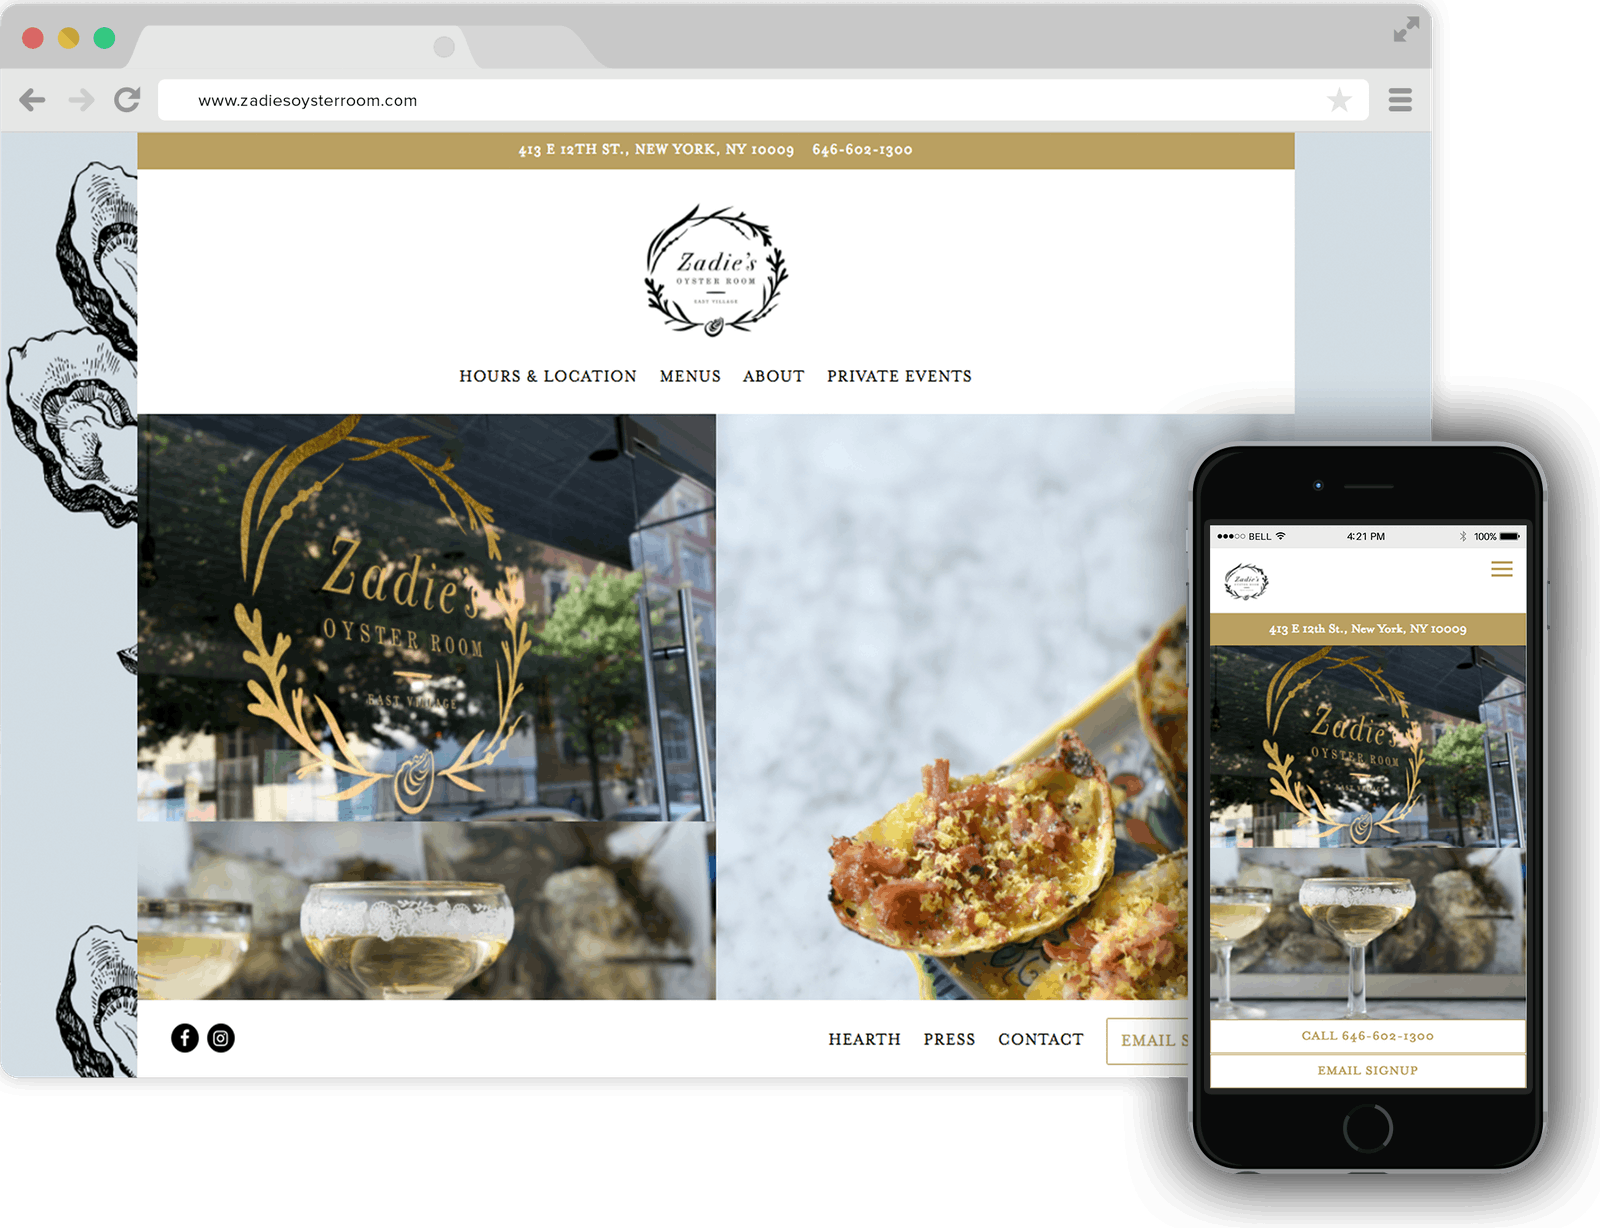 Zadie's Oyster Room Restaurant Website